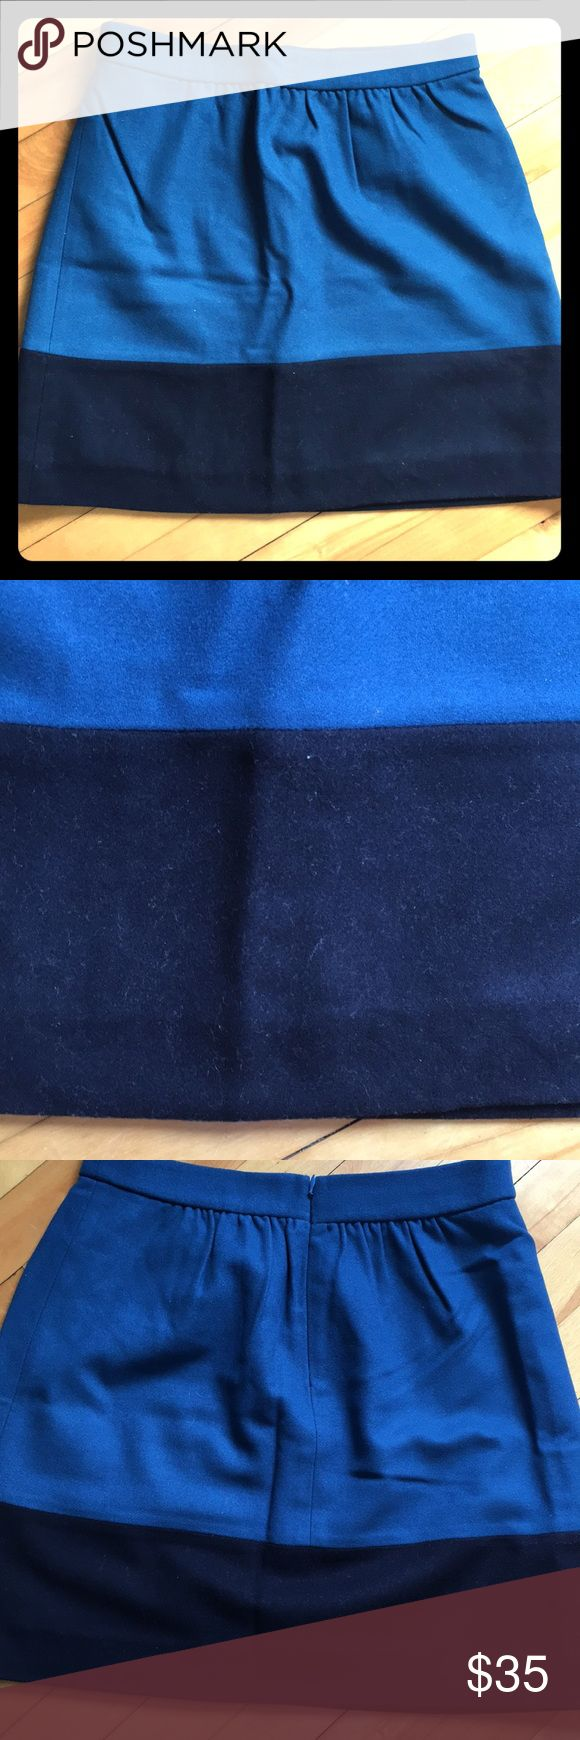 J. Crew wool mini skirt Beautiful turquoise and navy blue wool mini skirt from J. Crew. Pictures make the skirt appear in different shades of blue. Skirt sits just above the hips. Skirt is in new condition - has rarely been worn. J. Crew Skirts Mini